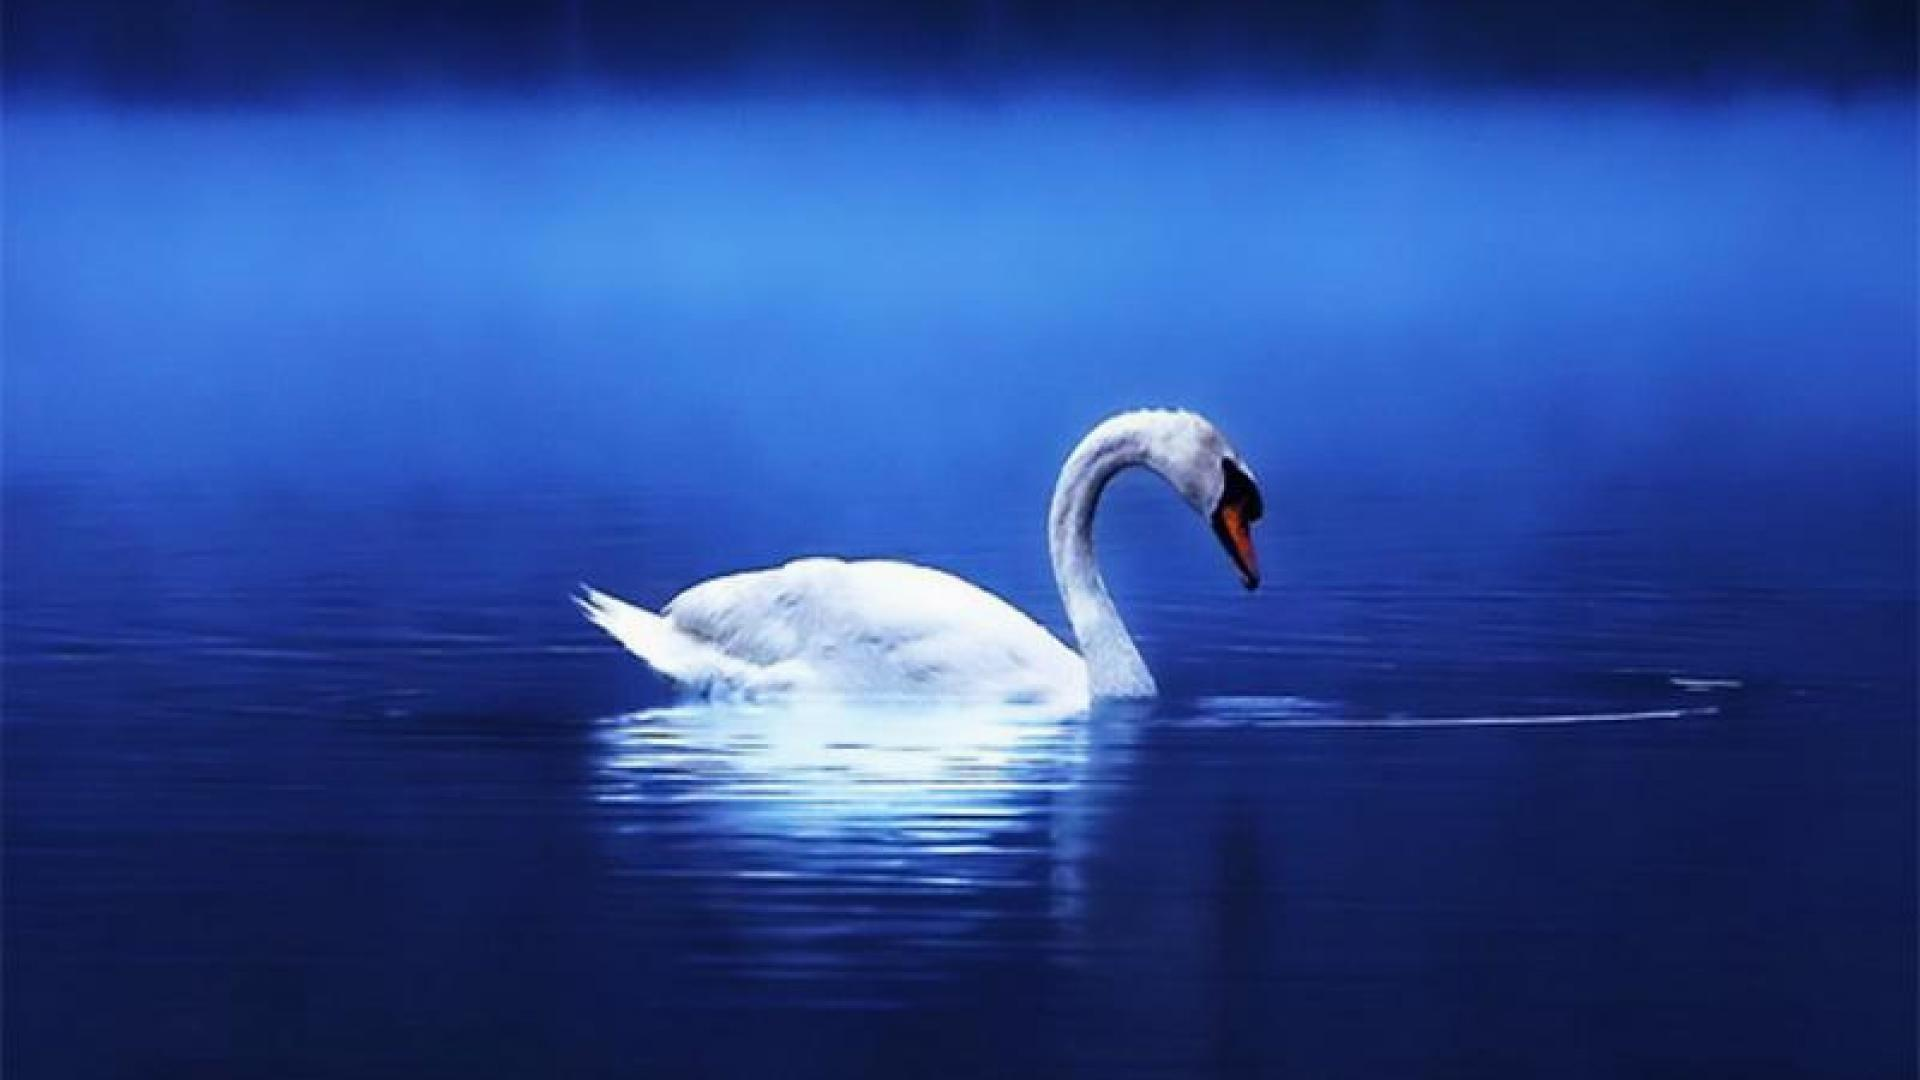 Swan Hd Wallpapers HD Wallpapers Download Free Images Wallpaper [1000image.com]